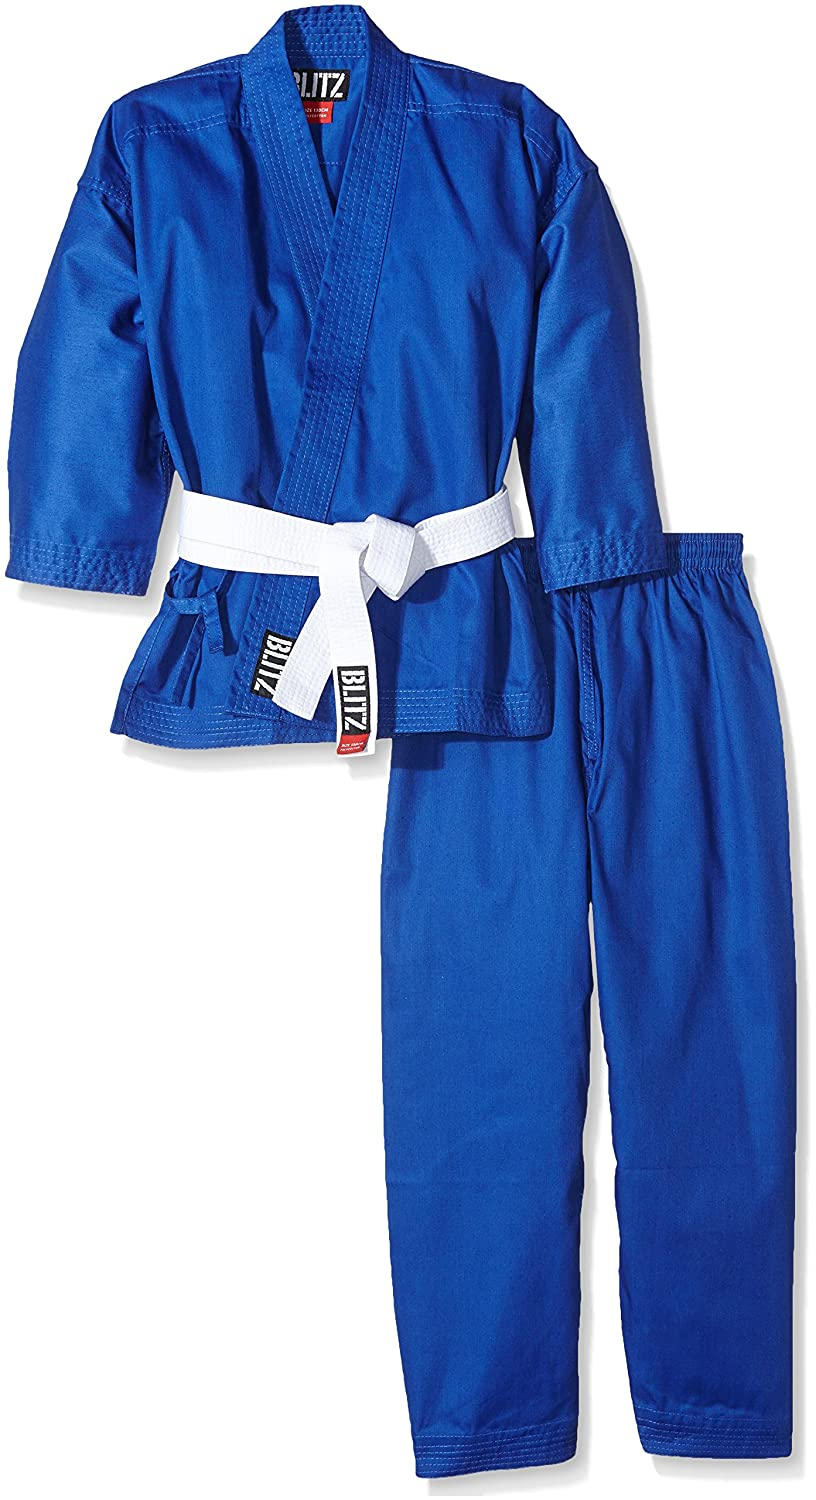 Blitz in Policotone Student Karate Suit